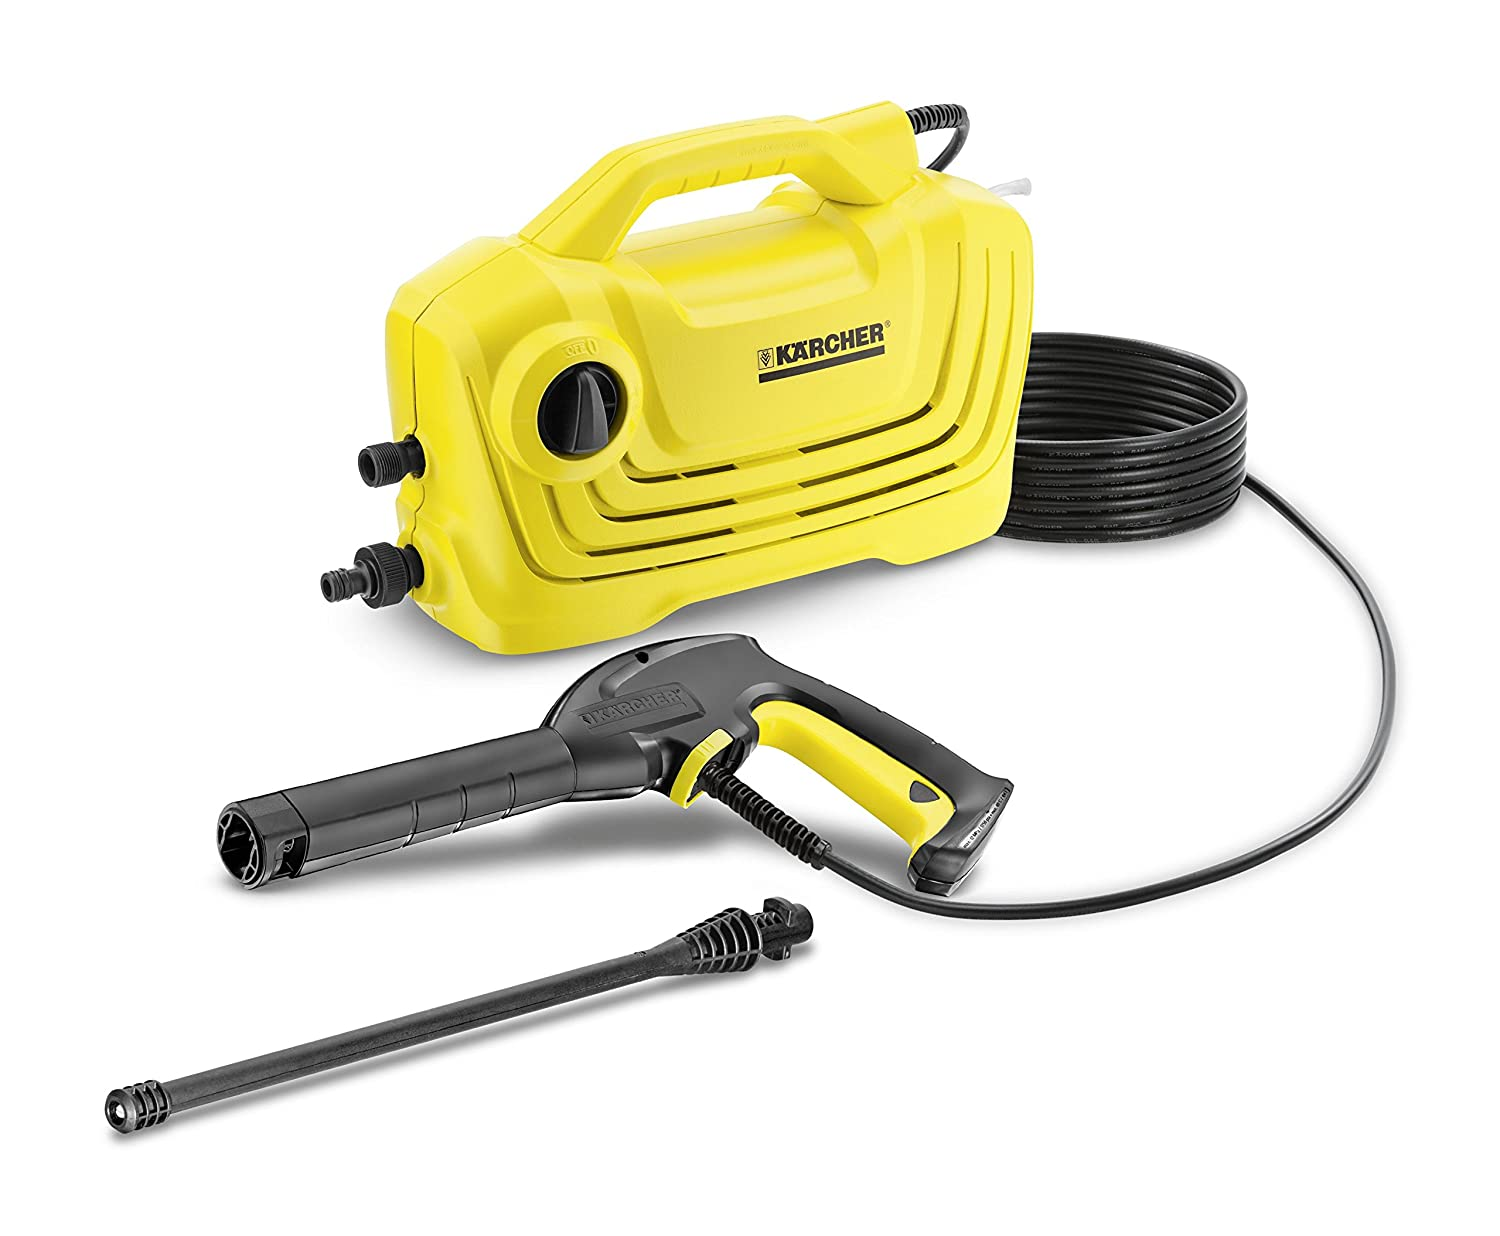 KARCHER(ケルヒャー) 高圧洗浄器 洗剤タンク付き ・ コンパクト K2クラシックプラス K2CP